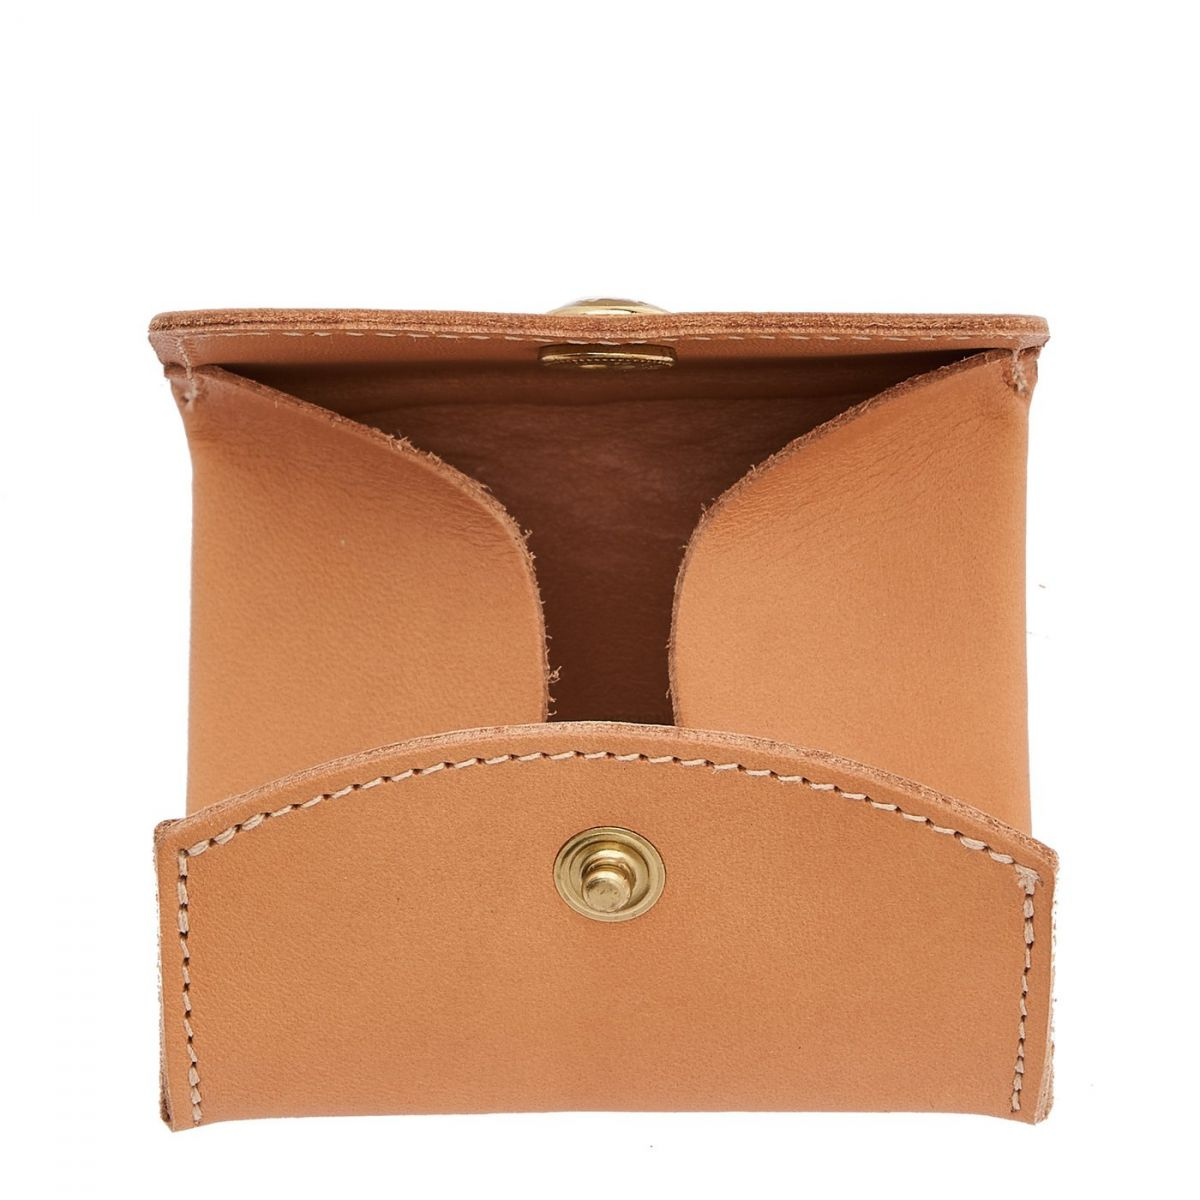 Coin Purse in Cowhide Leather SCP020 color Natural | Details